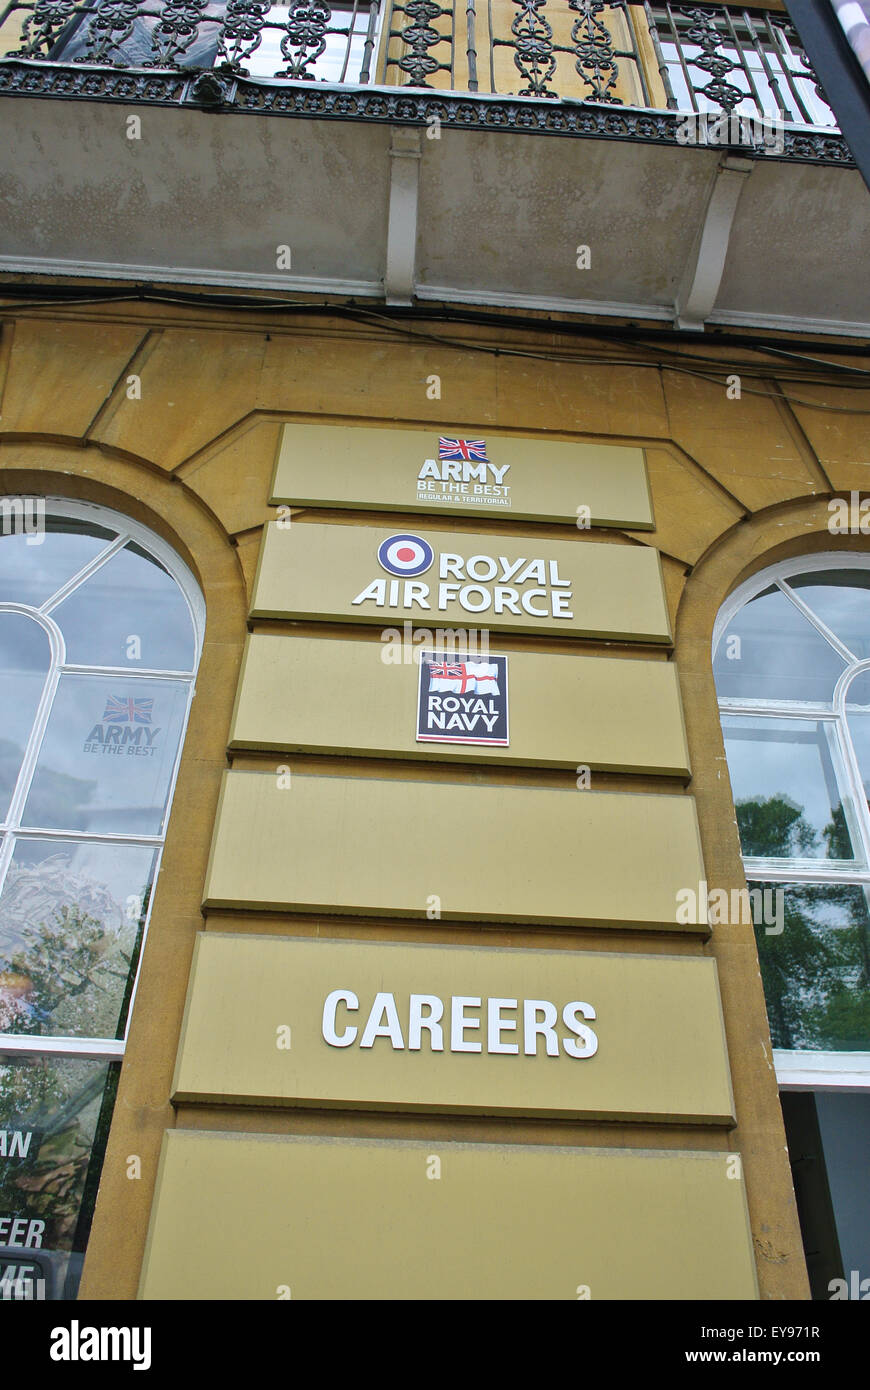 Army Air Force careers office Oxford England UK - Stock Image